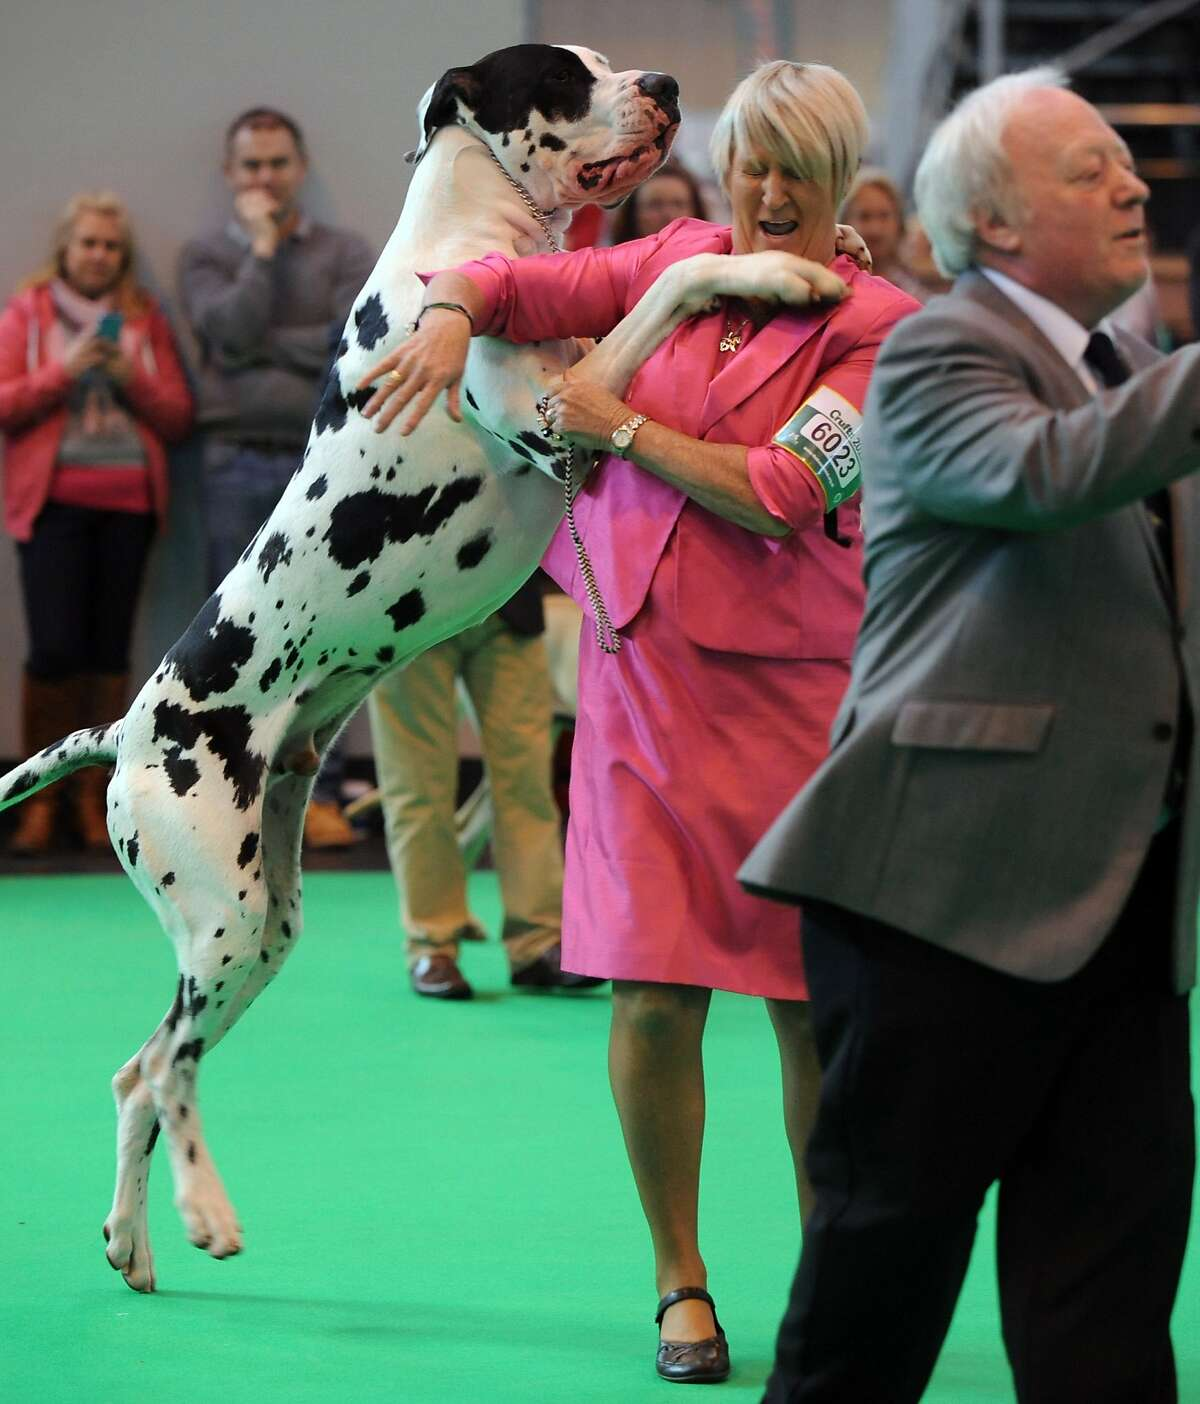 I WON! I WON! I WON! A Great Dane gets a little excited after taking first place in its class at the Crufts dog show in Birmingham, England.